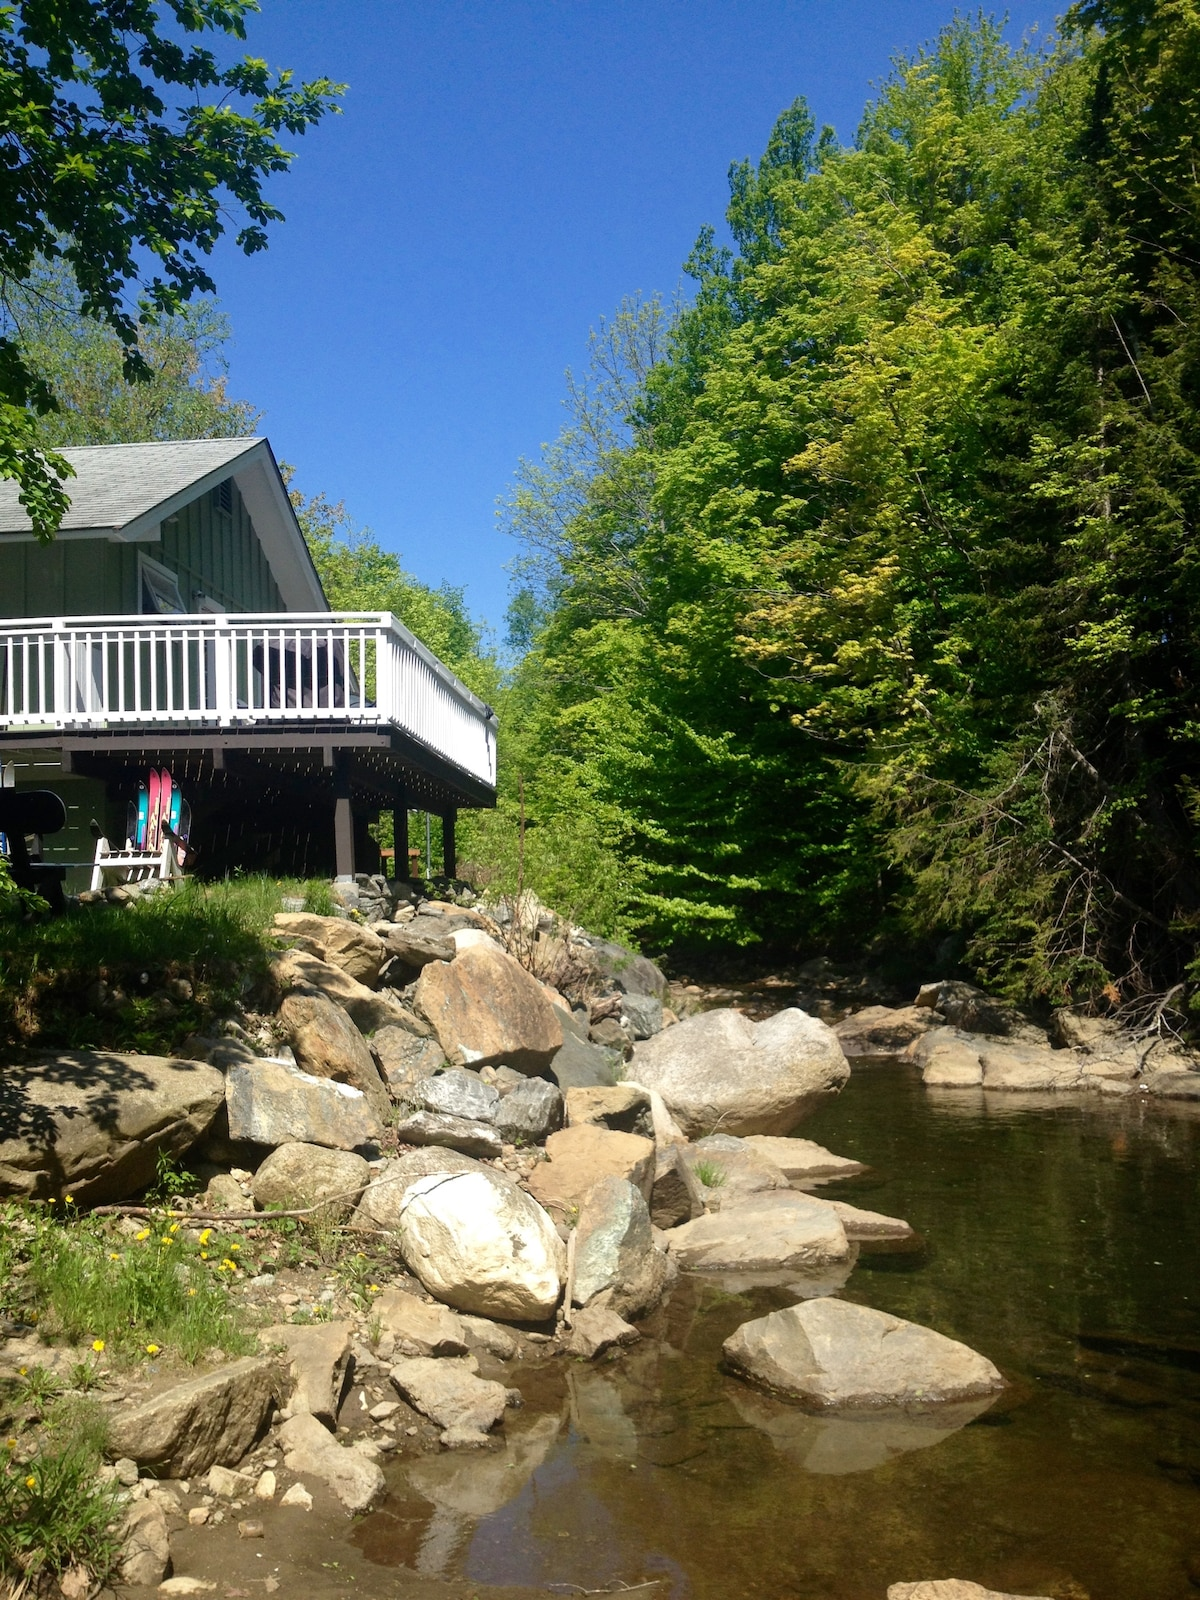 Mount Snow River House 1 mile away